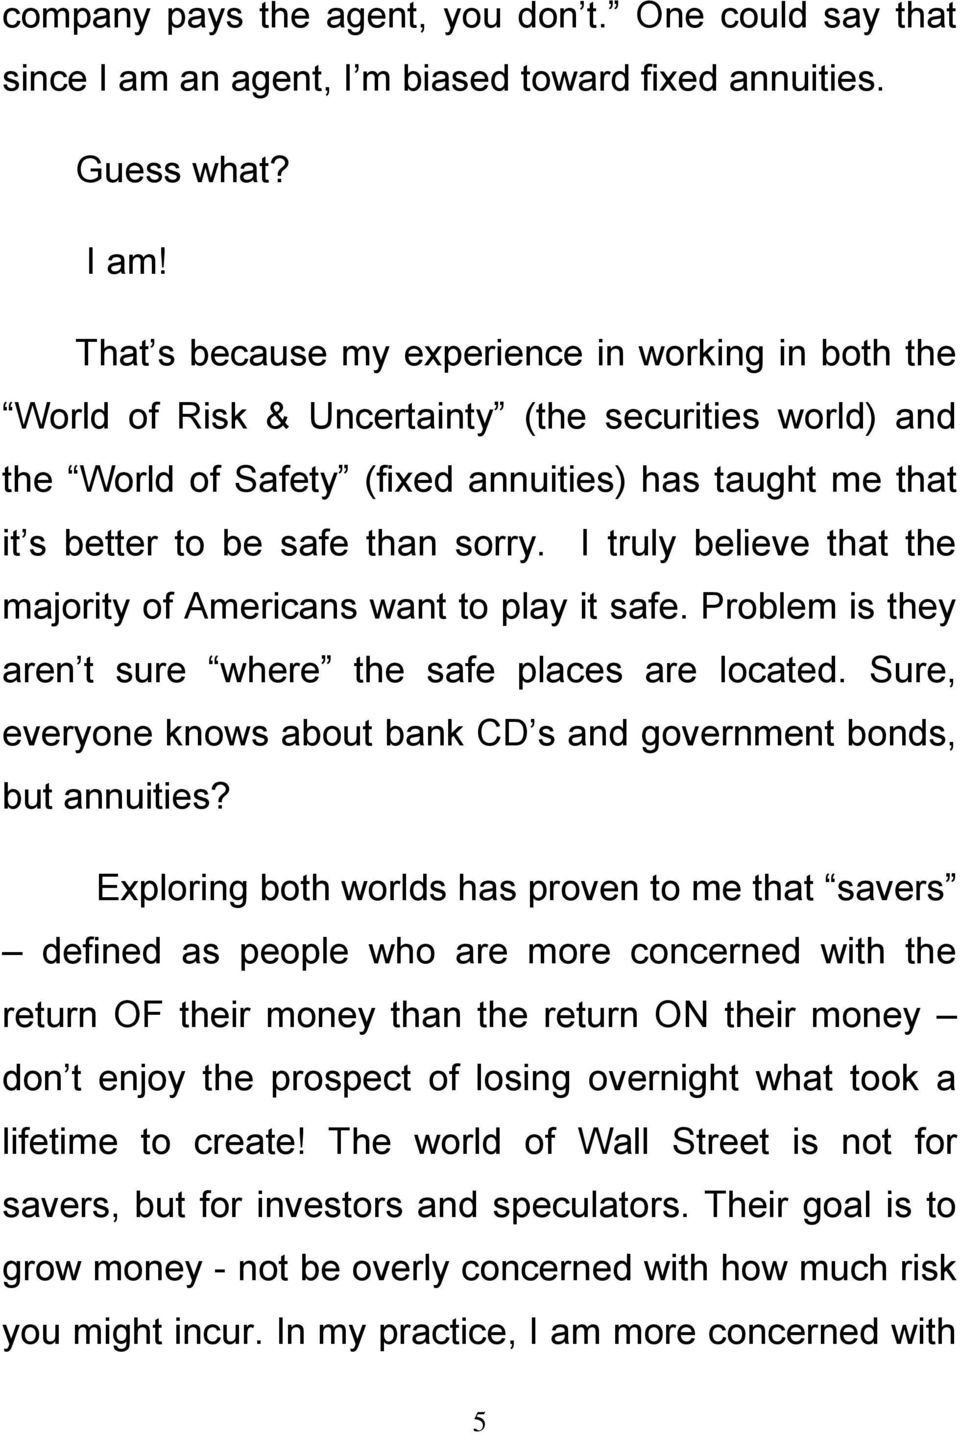 That s because my experience in working in both the World of Risk & Uncertainty (the securities world) and the World of Safety (fixed annuities) has taught me that it s better to be safe than sorry.